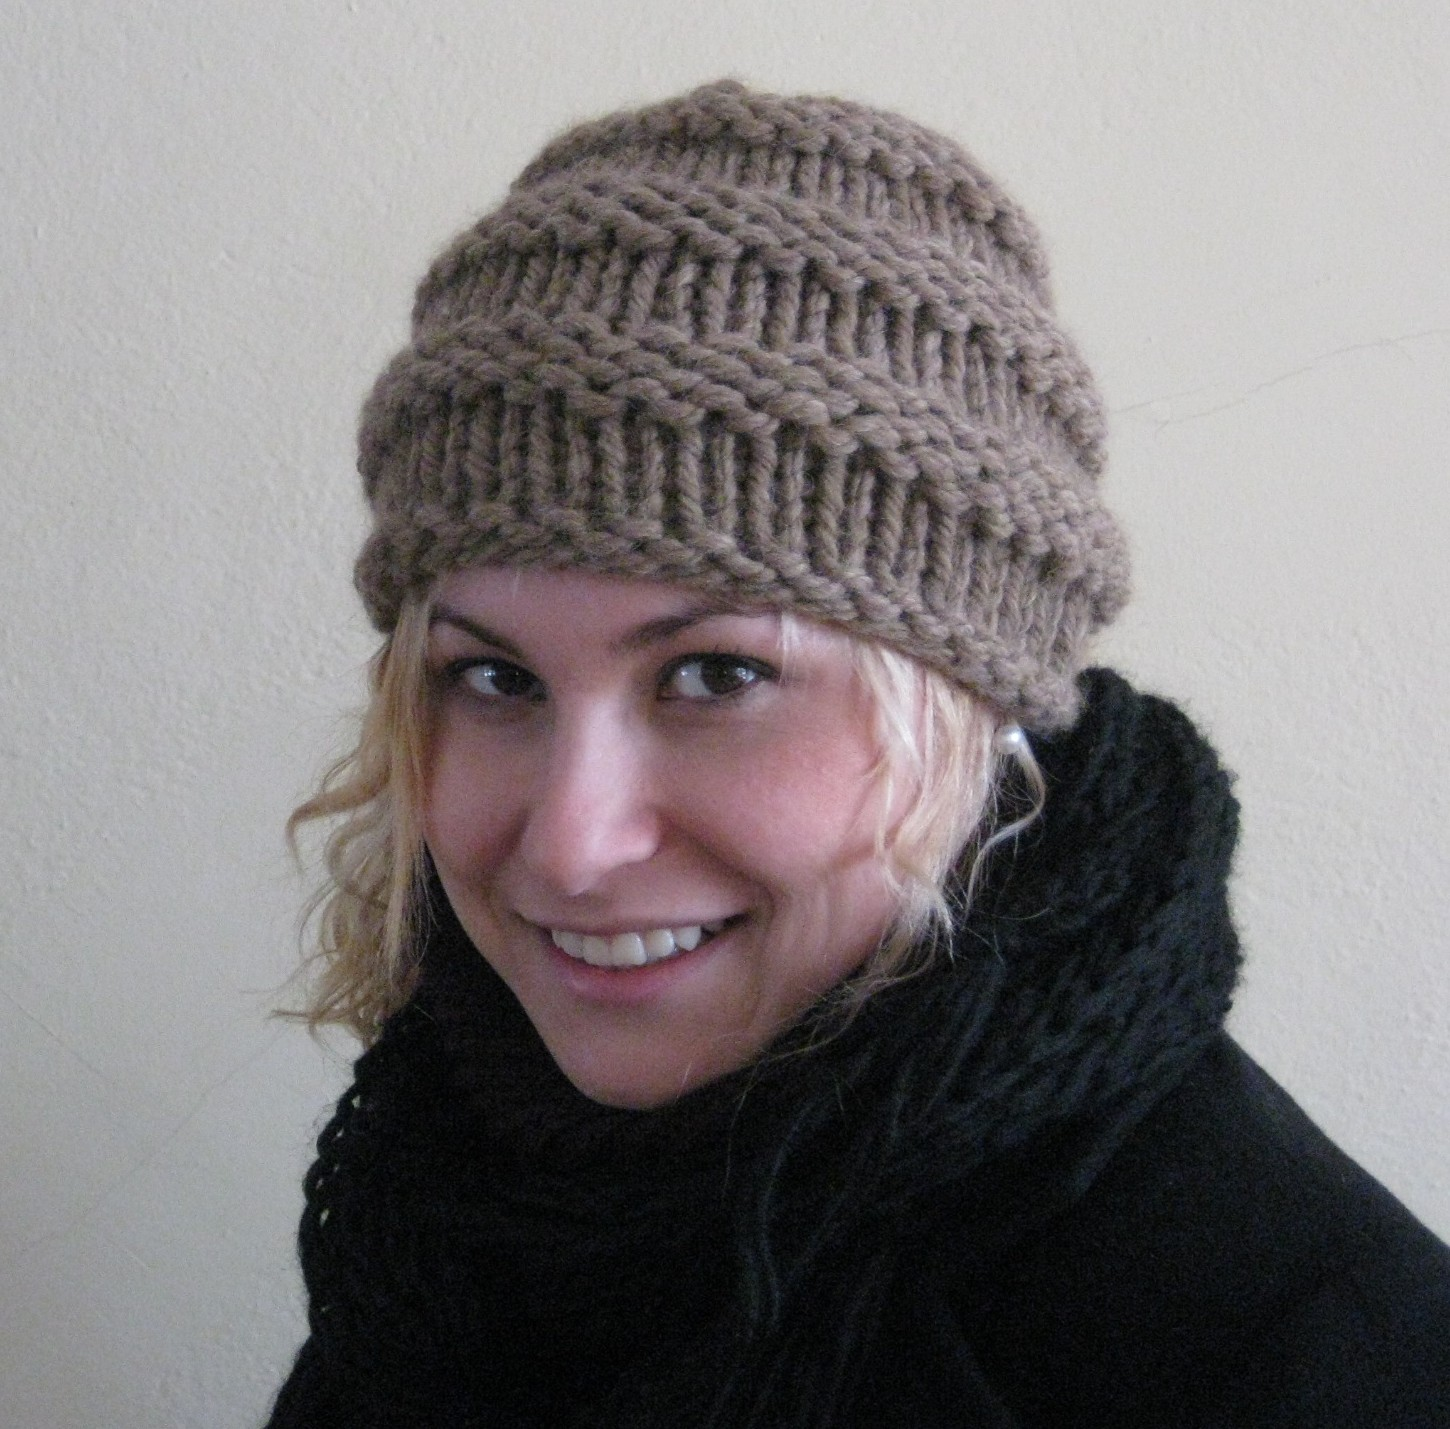 Easy Knit Hat Pattern Circular Needles : the Yarn Princess: The New Quick and Easy Ribbed Hat